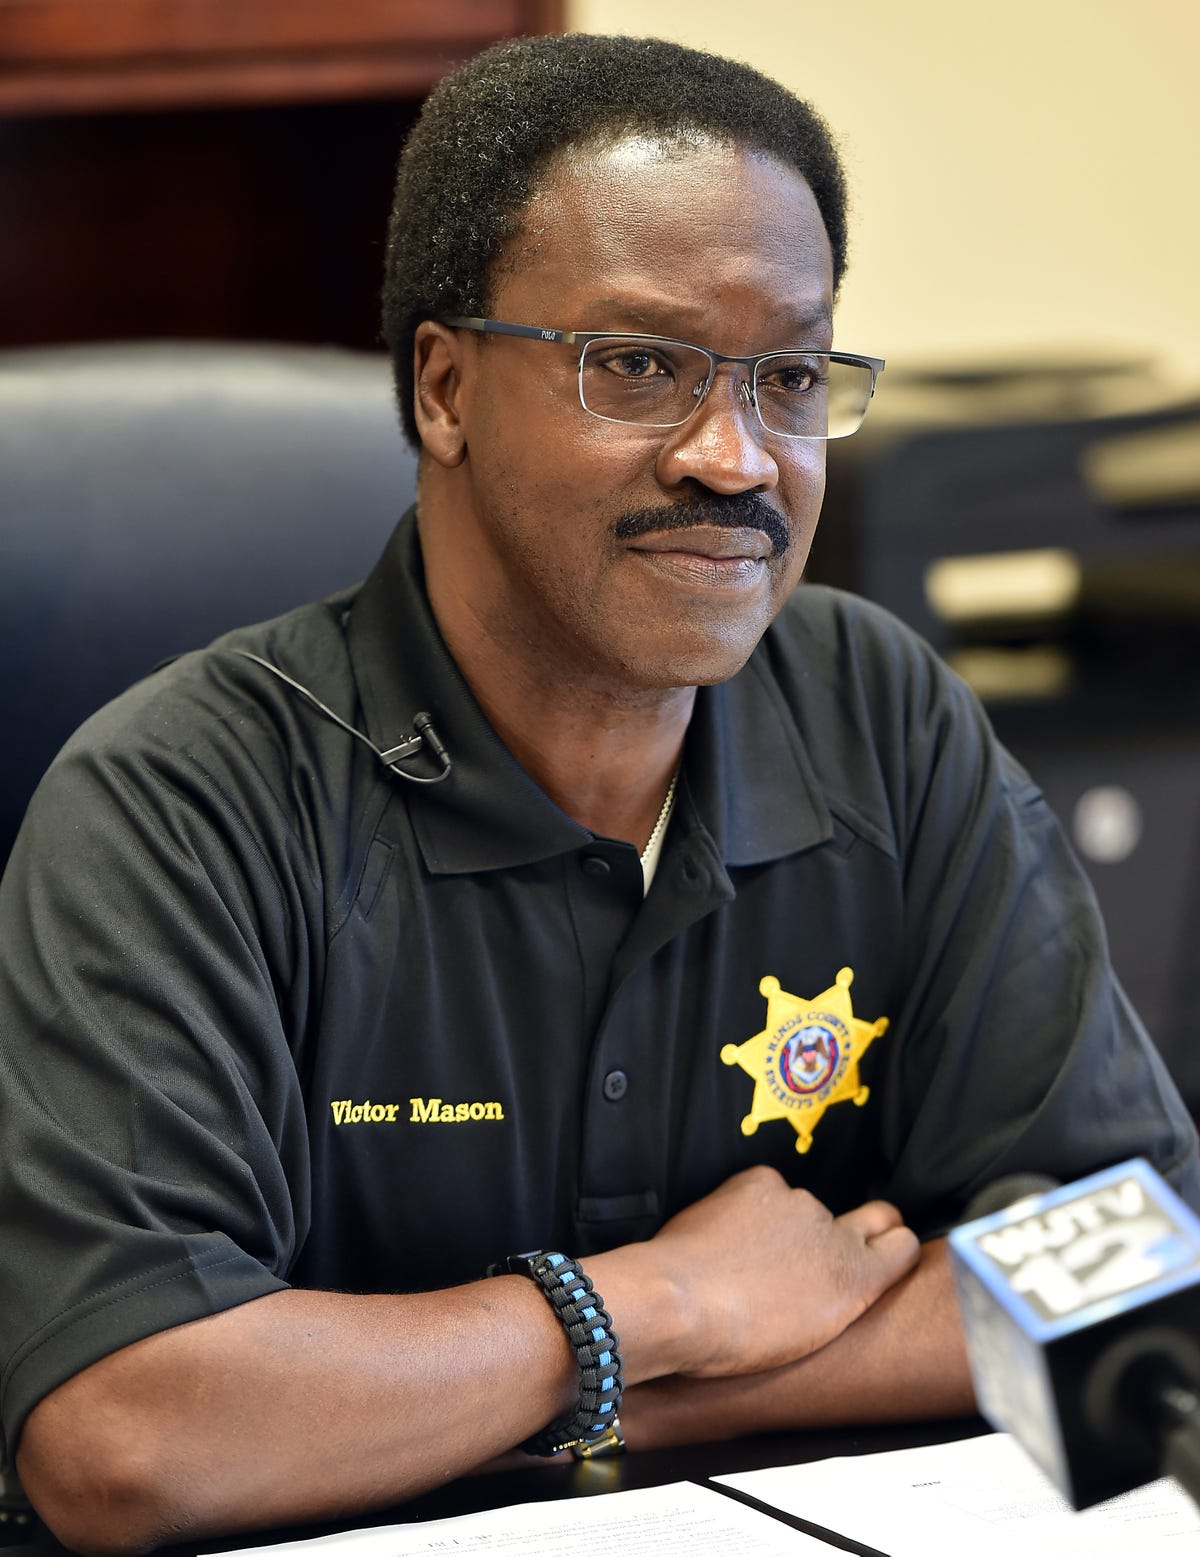 Candidates running for sheriff and other county offices in metro